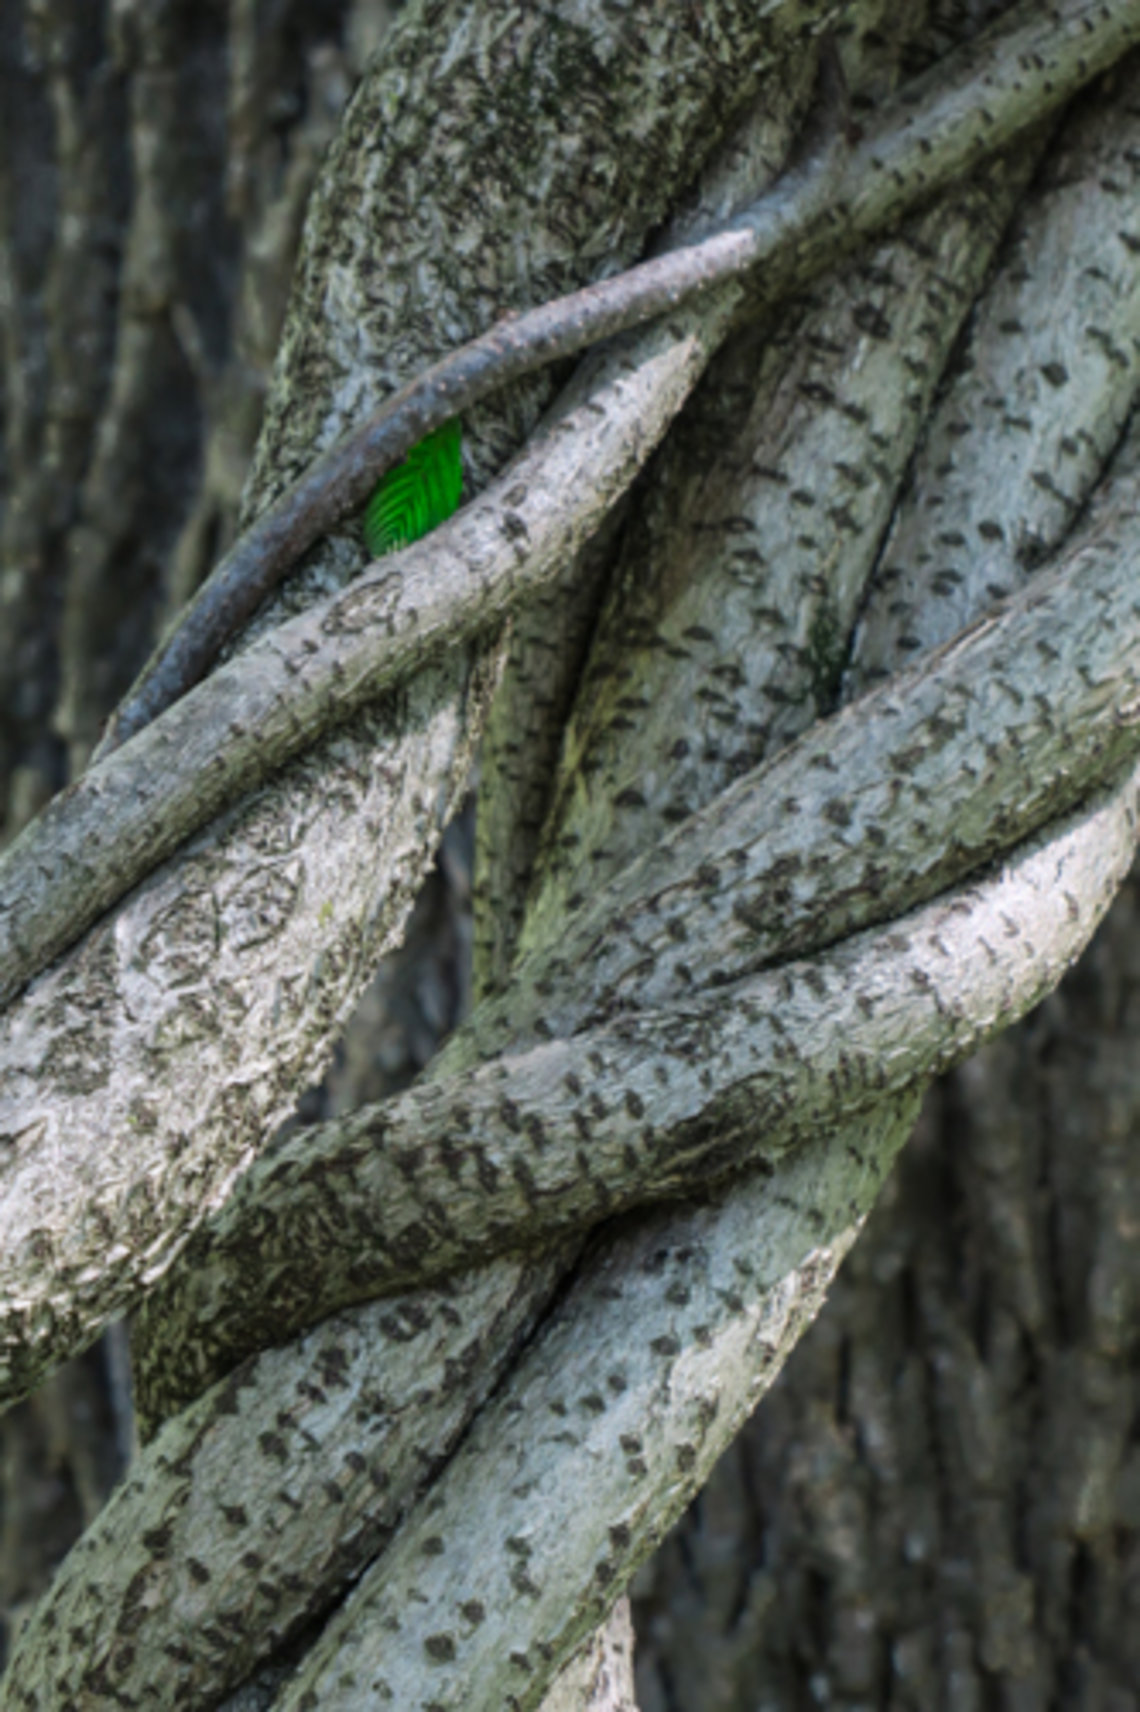 A tiny green leaf sits inside the knotted branches of a tree.